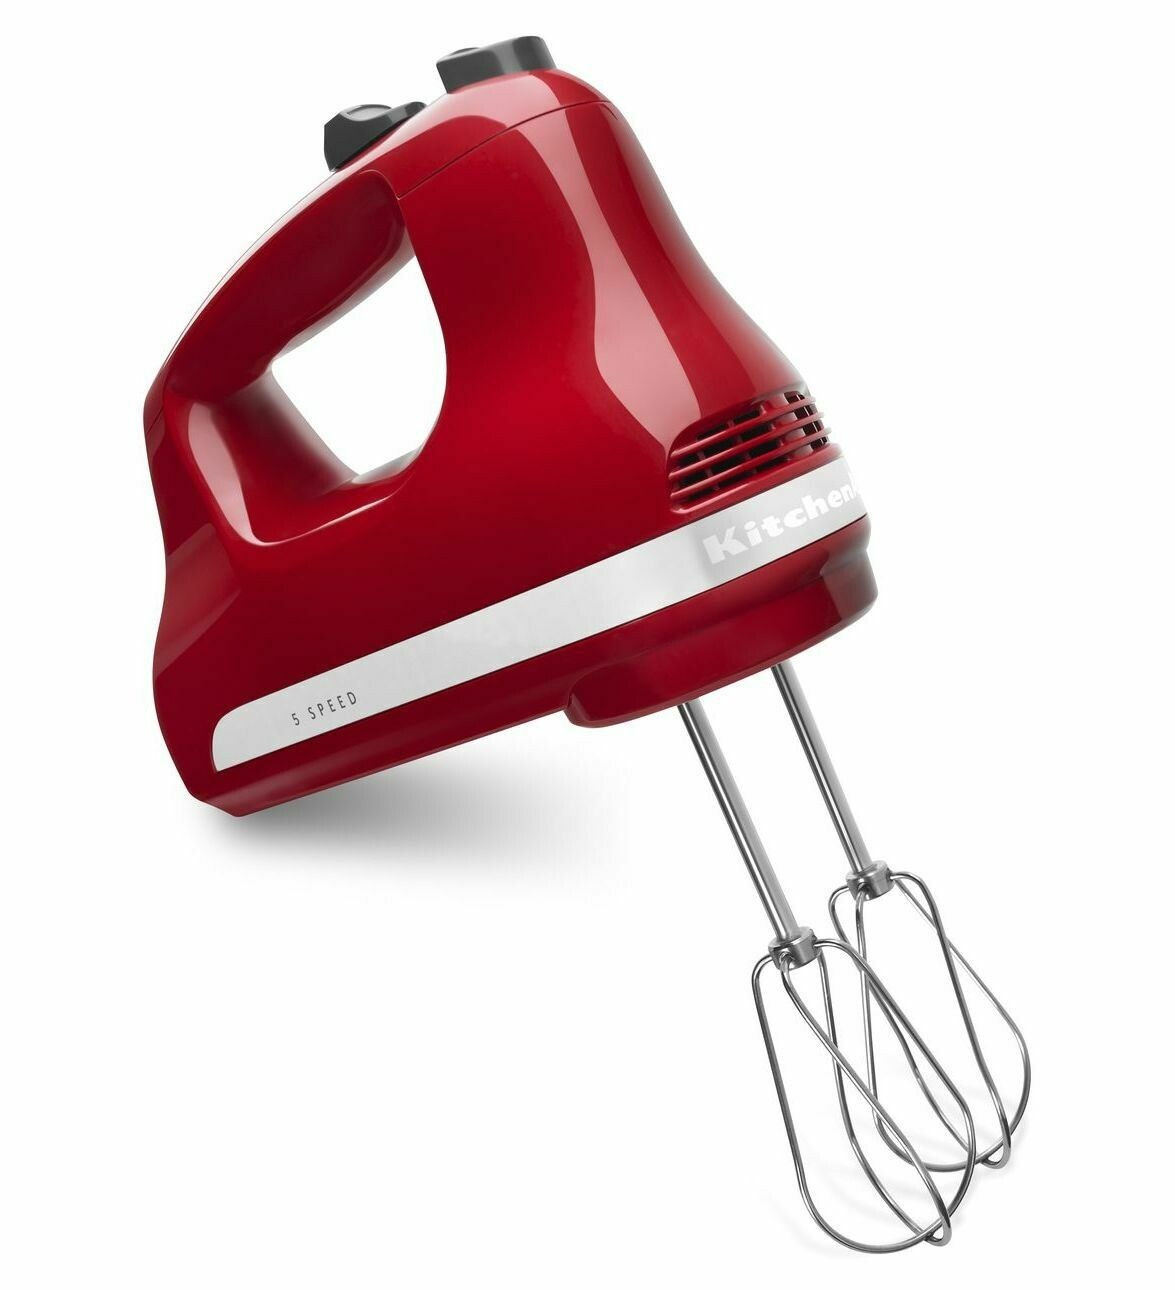 KitchenAid 5 Speed Hand Mixer